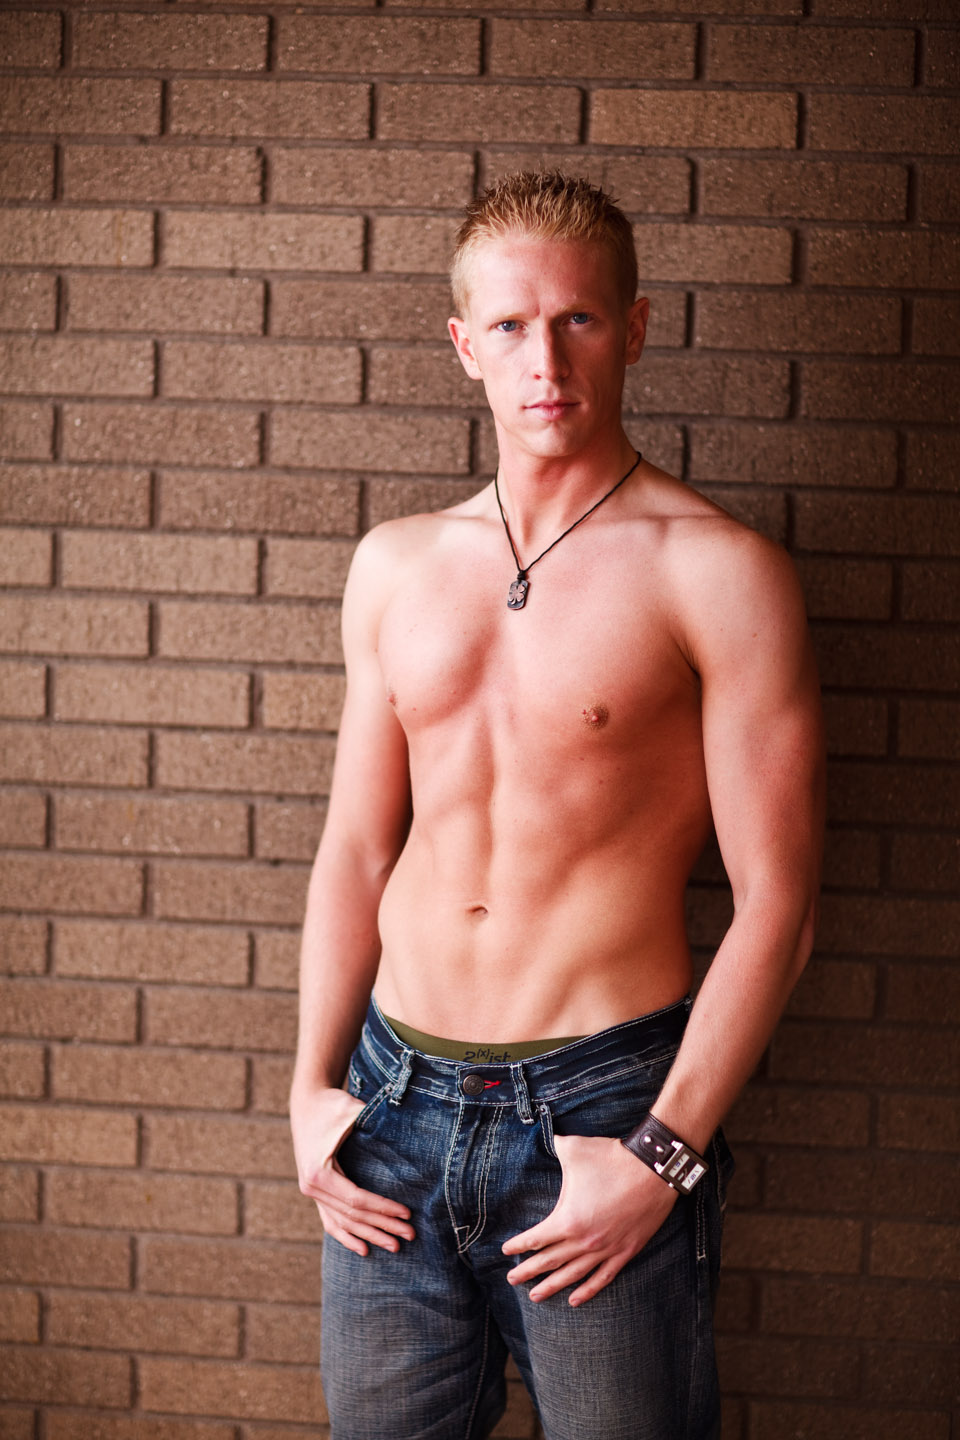 Going shirtless with a brick wall